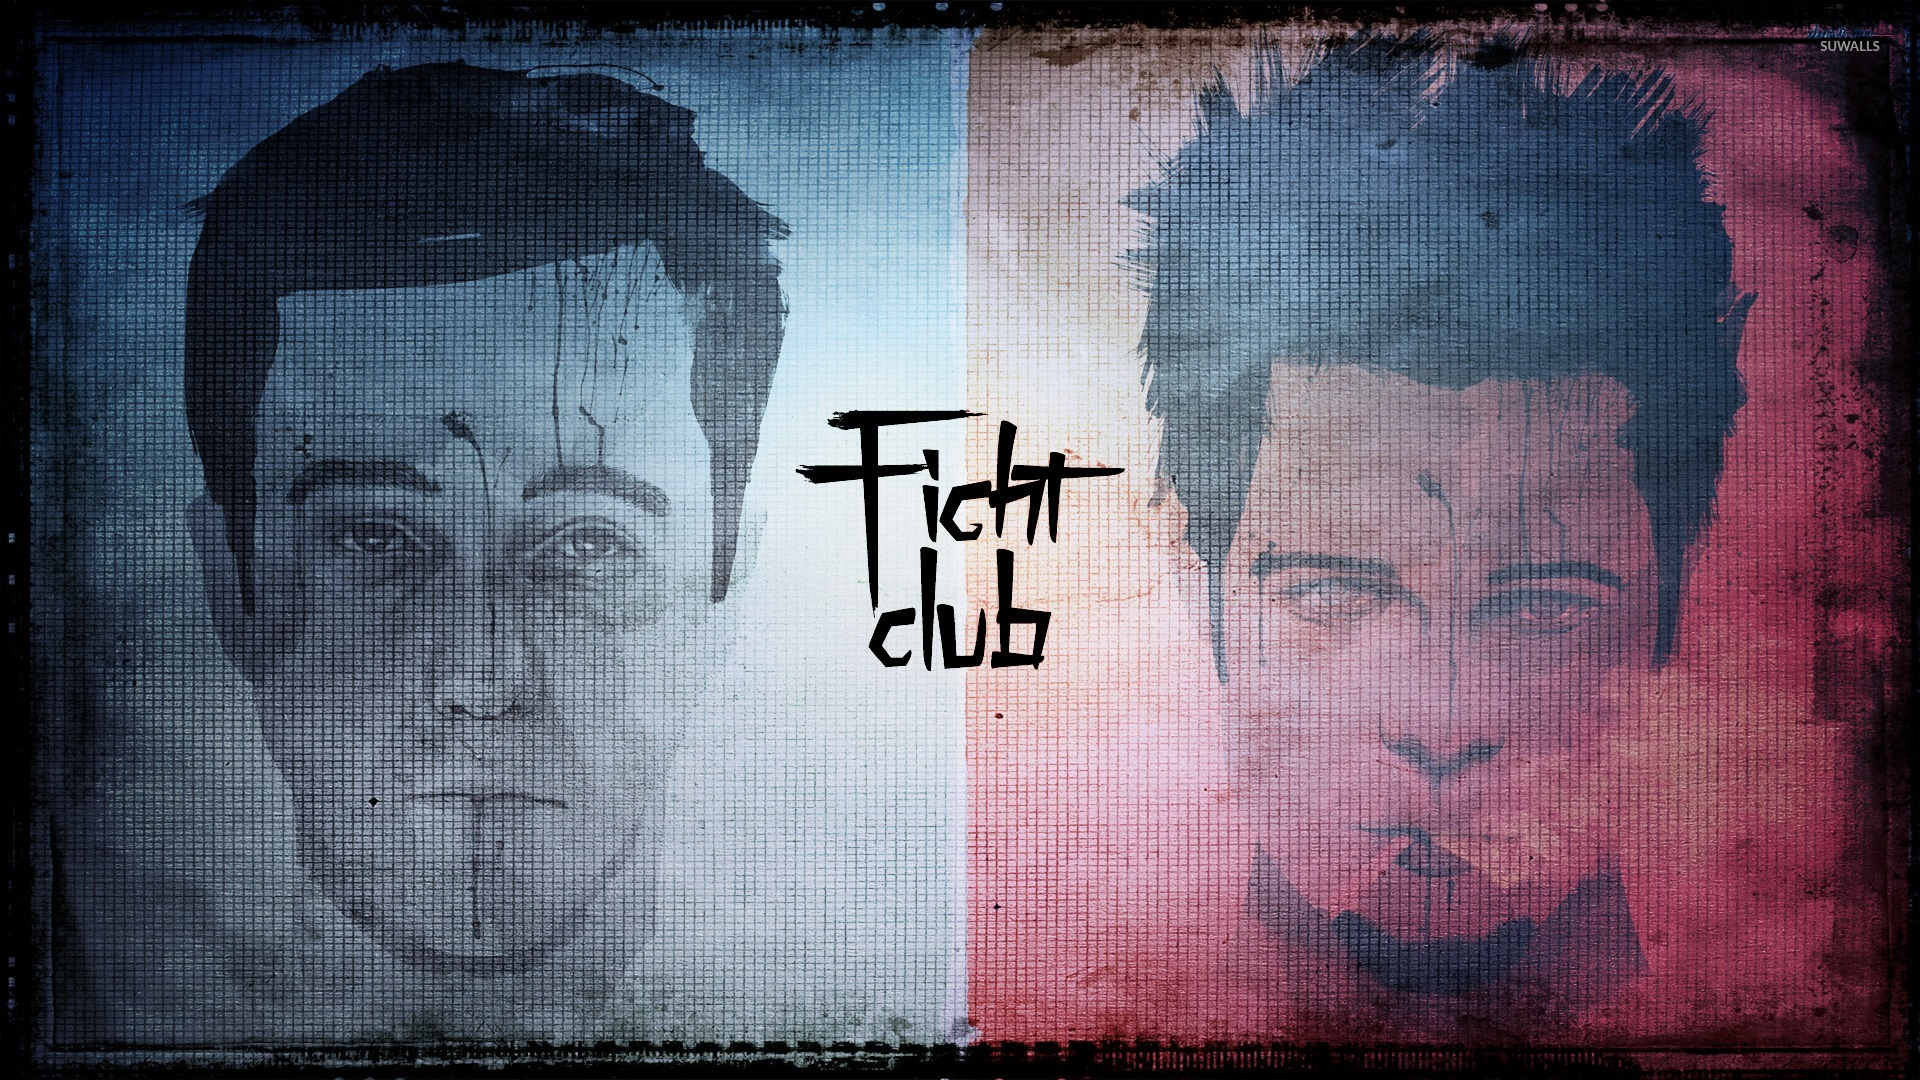 Fight Club 3 Wallpaper Movie Wallpapers 31005